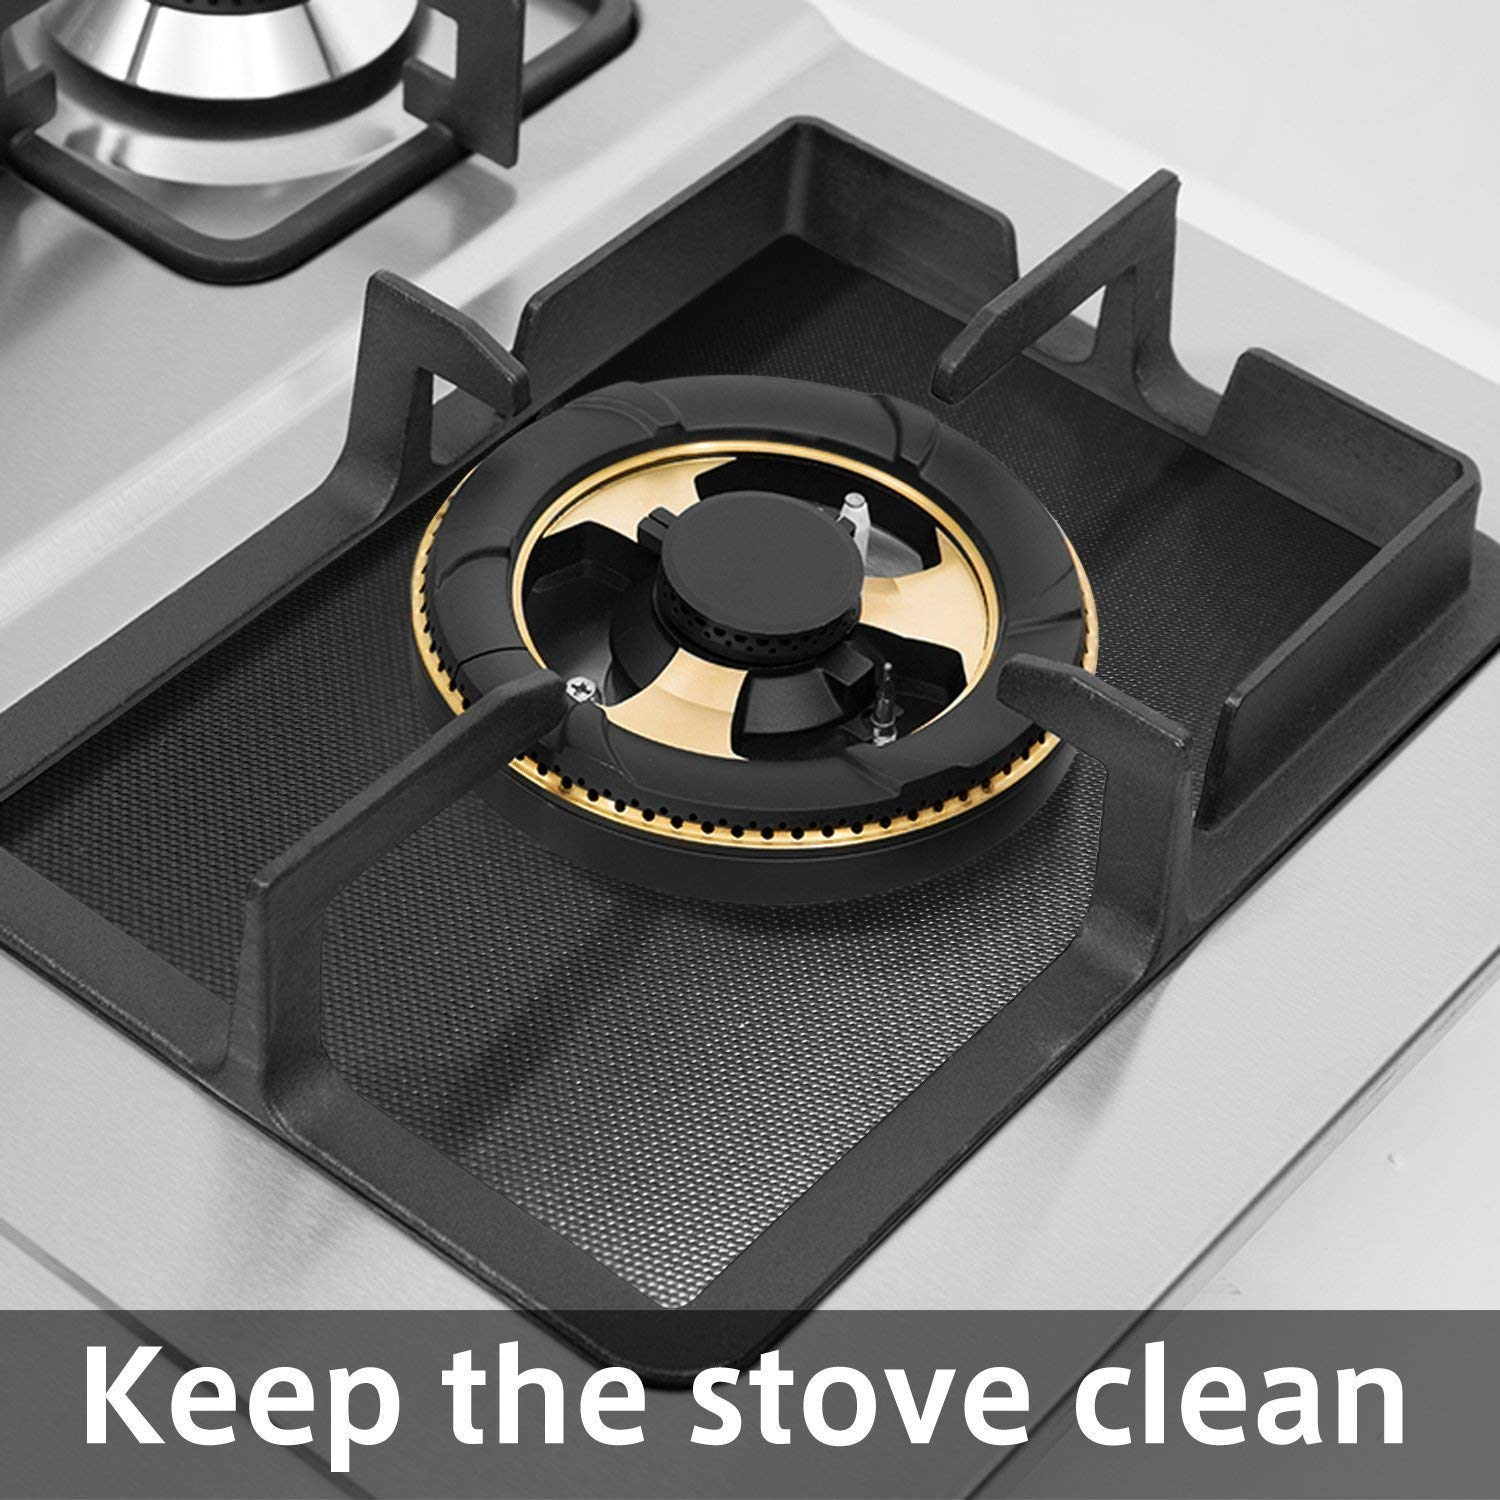 """RCruning-EU Gas Hob Range Protectors Set of/4 Gas Stove Burner Covers 0.12 mm 10.6/""""x 10.6/"""" for Kitchen Cooking-Silver"""